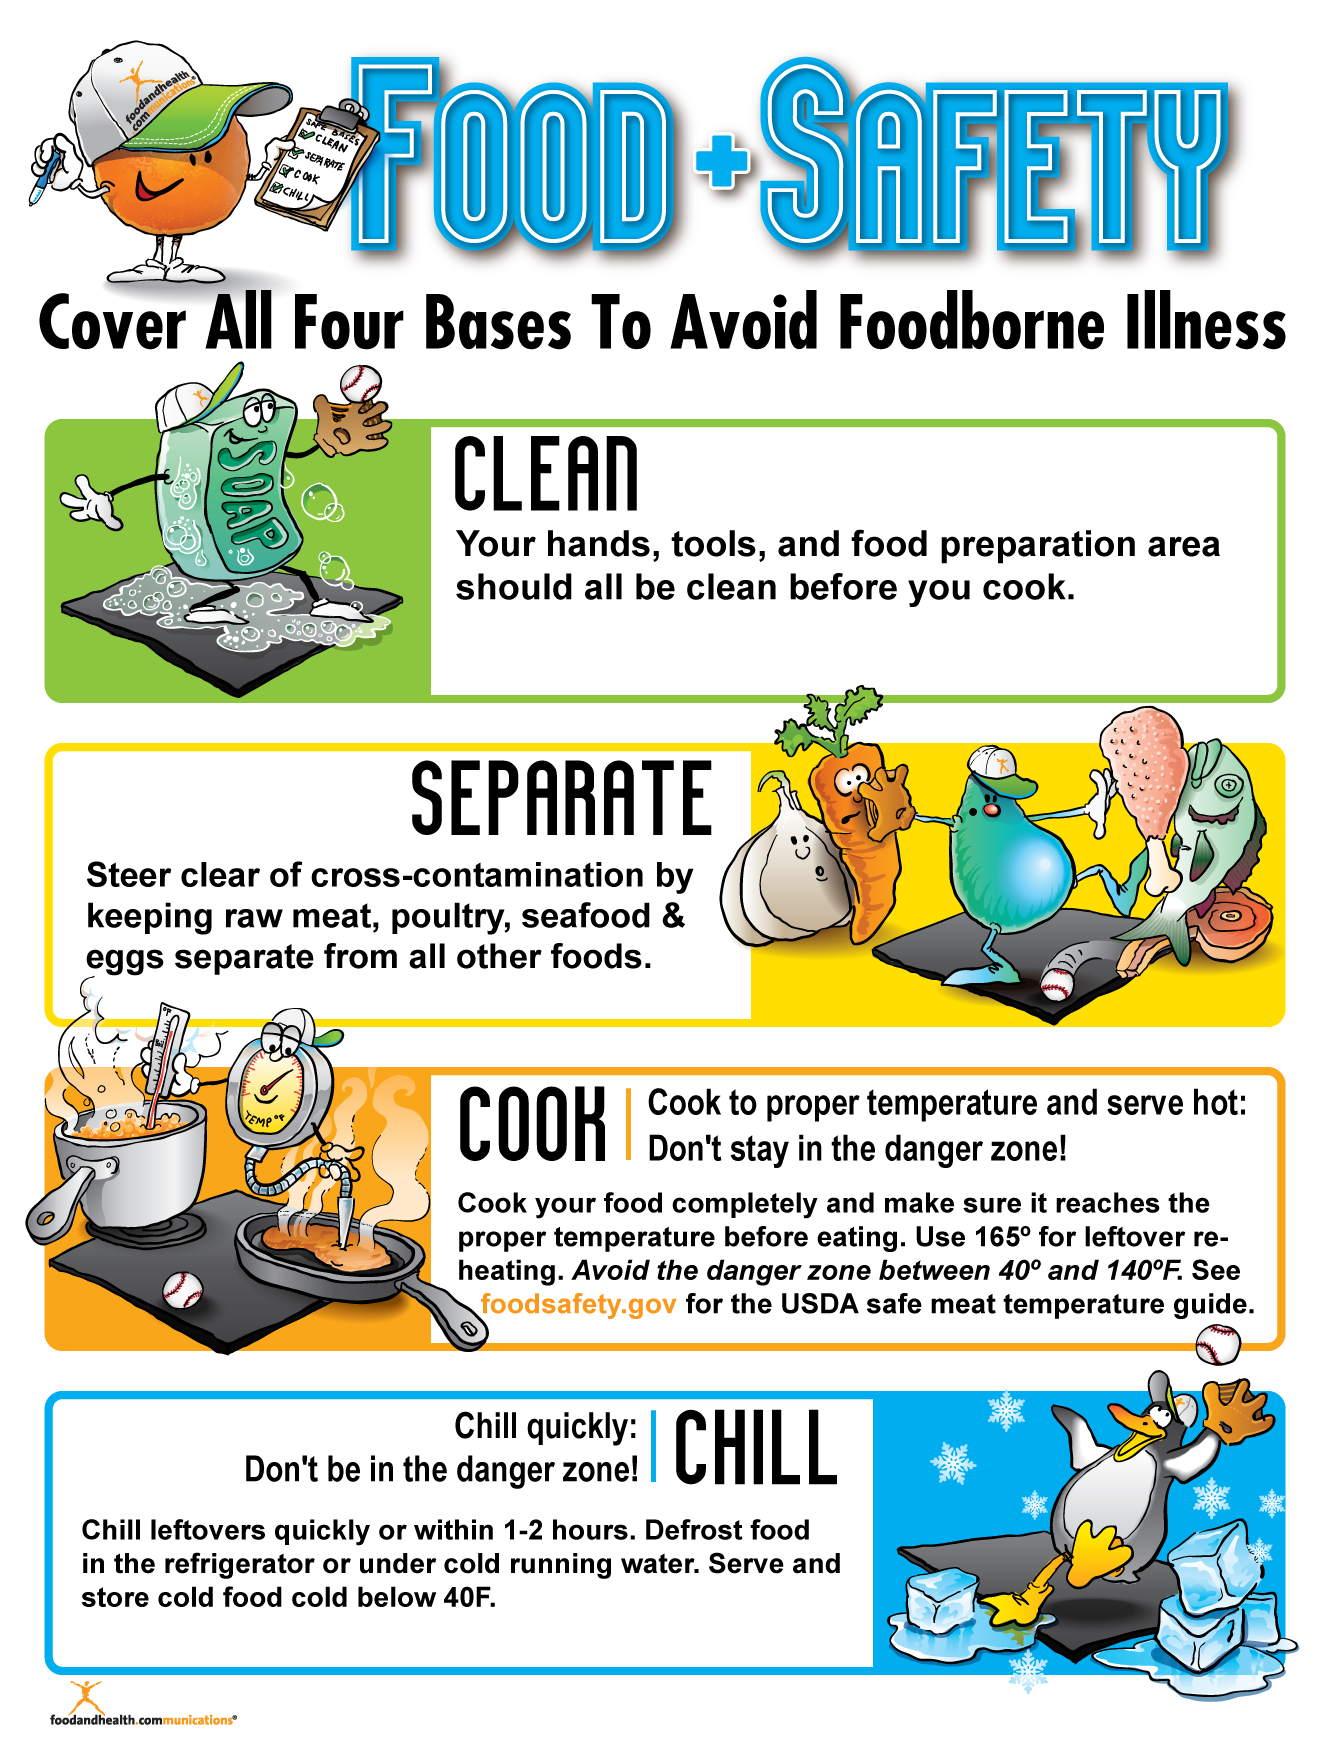 Which Storage Method May Cause Tcs Food To Become Unsafe Glamorous Food Safety Poster  Pinterest  Food Safety Safety Posters And Safety